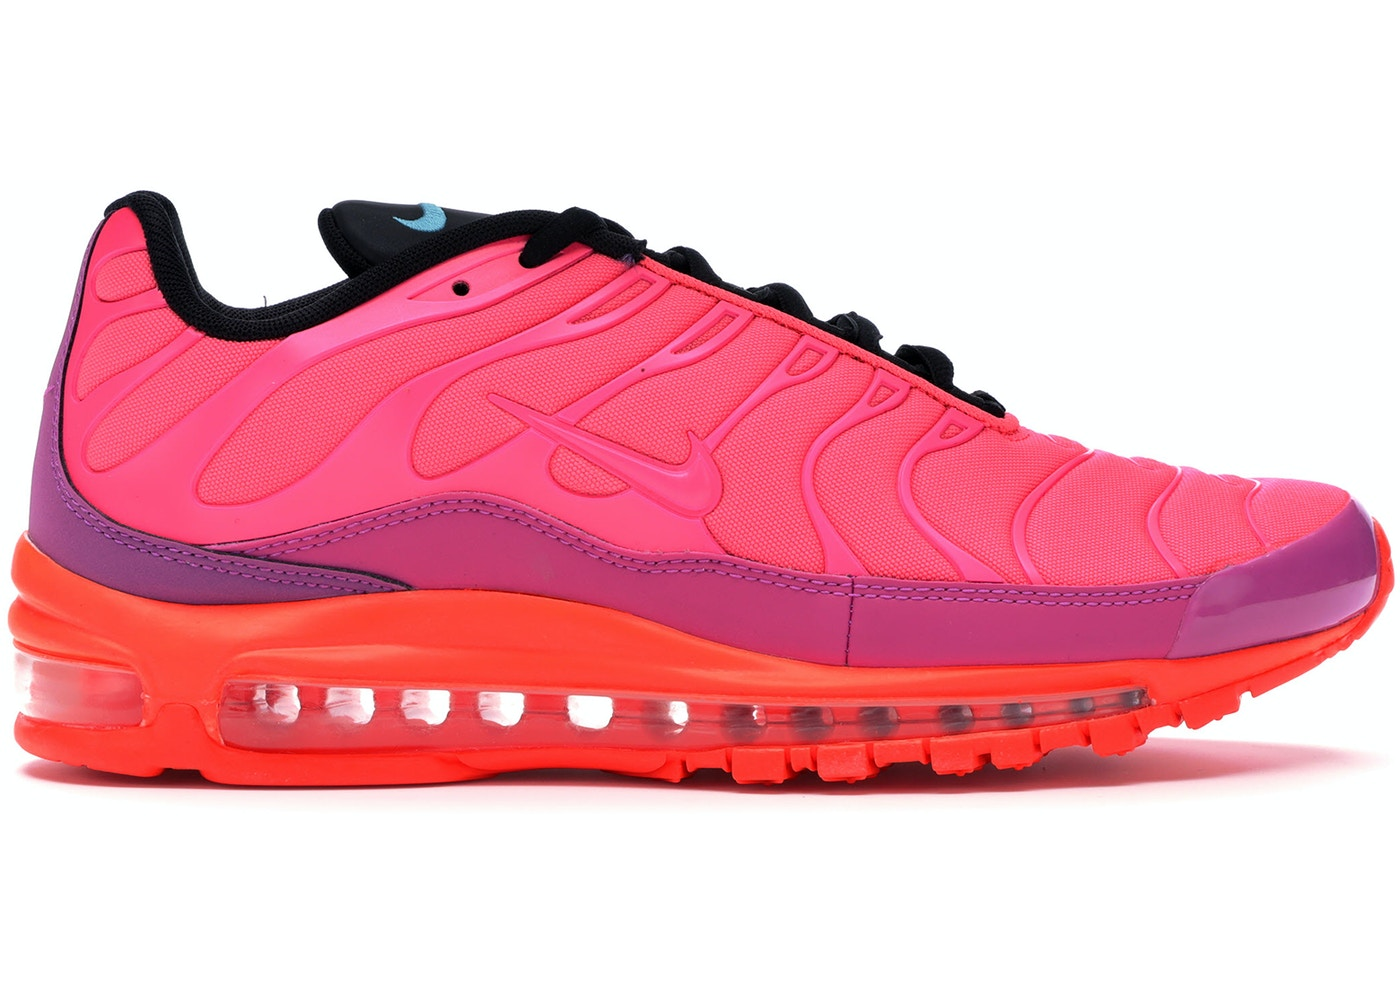 newest a553f a0081 Air Max 97/Plus Racer Pink Hyper Magenta